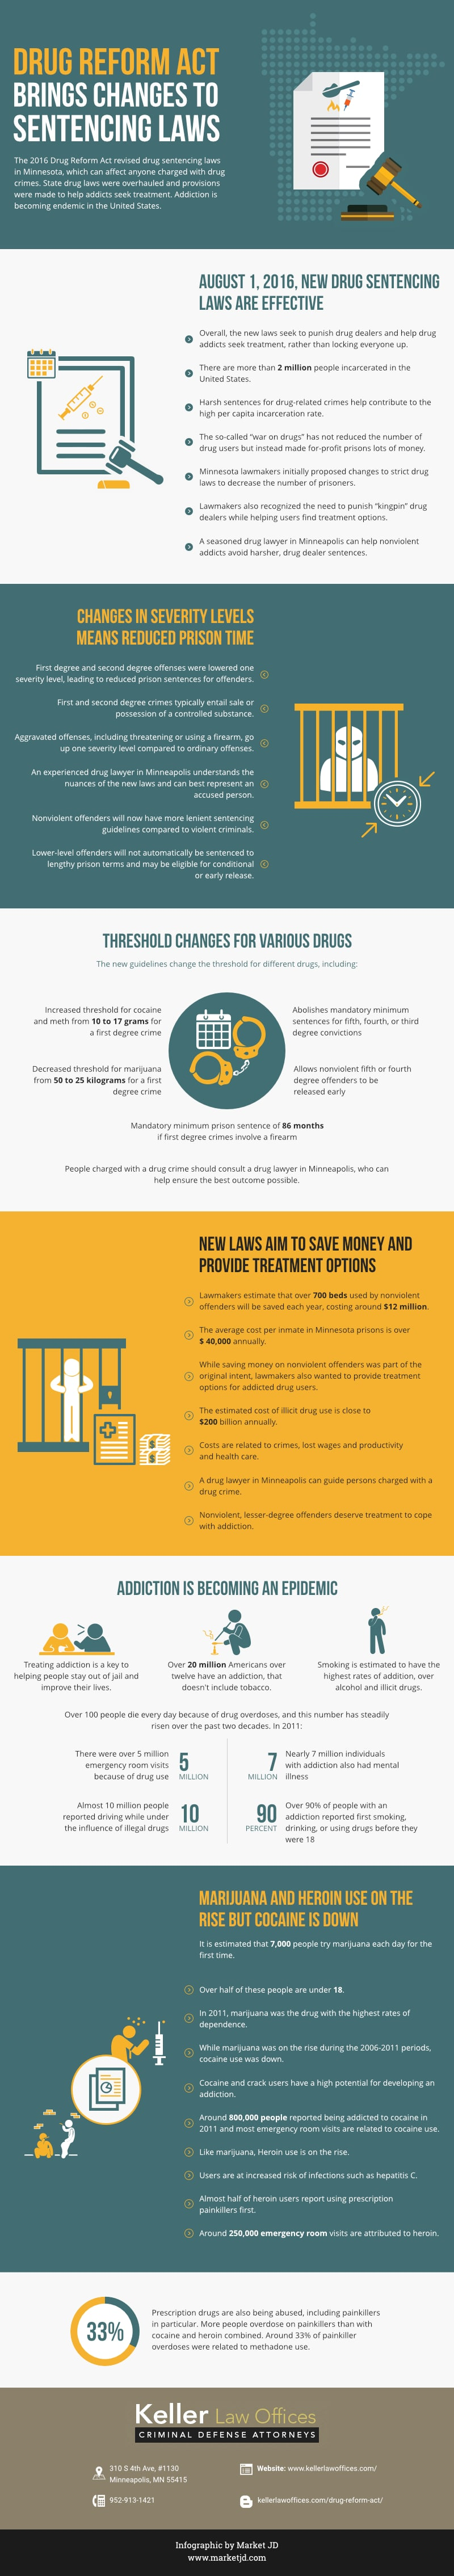 Drug Reform Act Brings Changes_Drug Lawyer Minneapolis